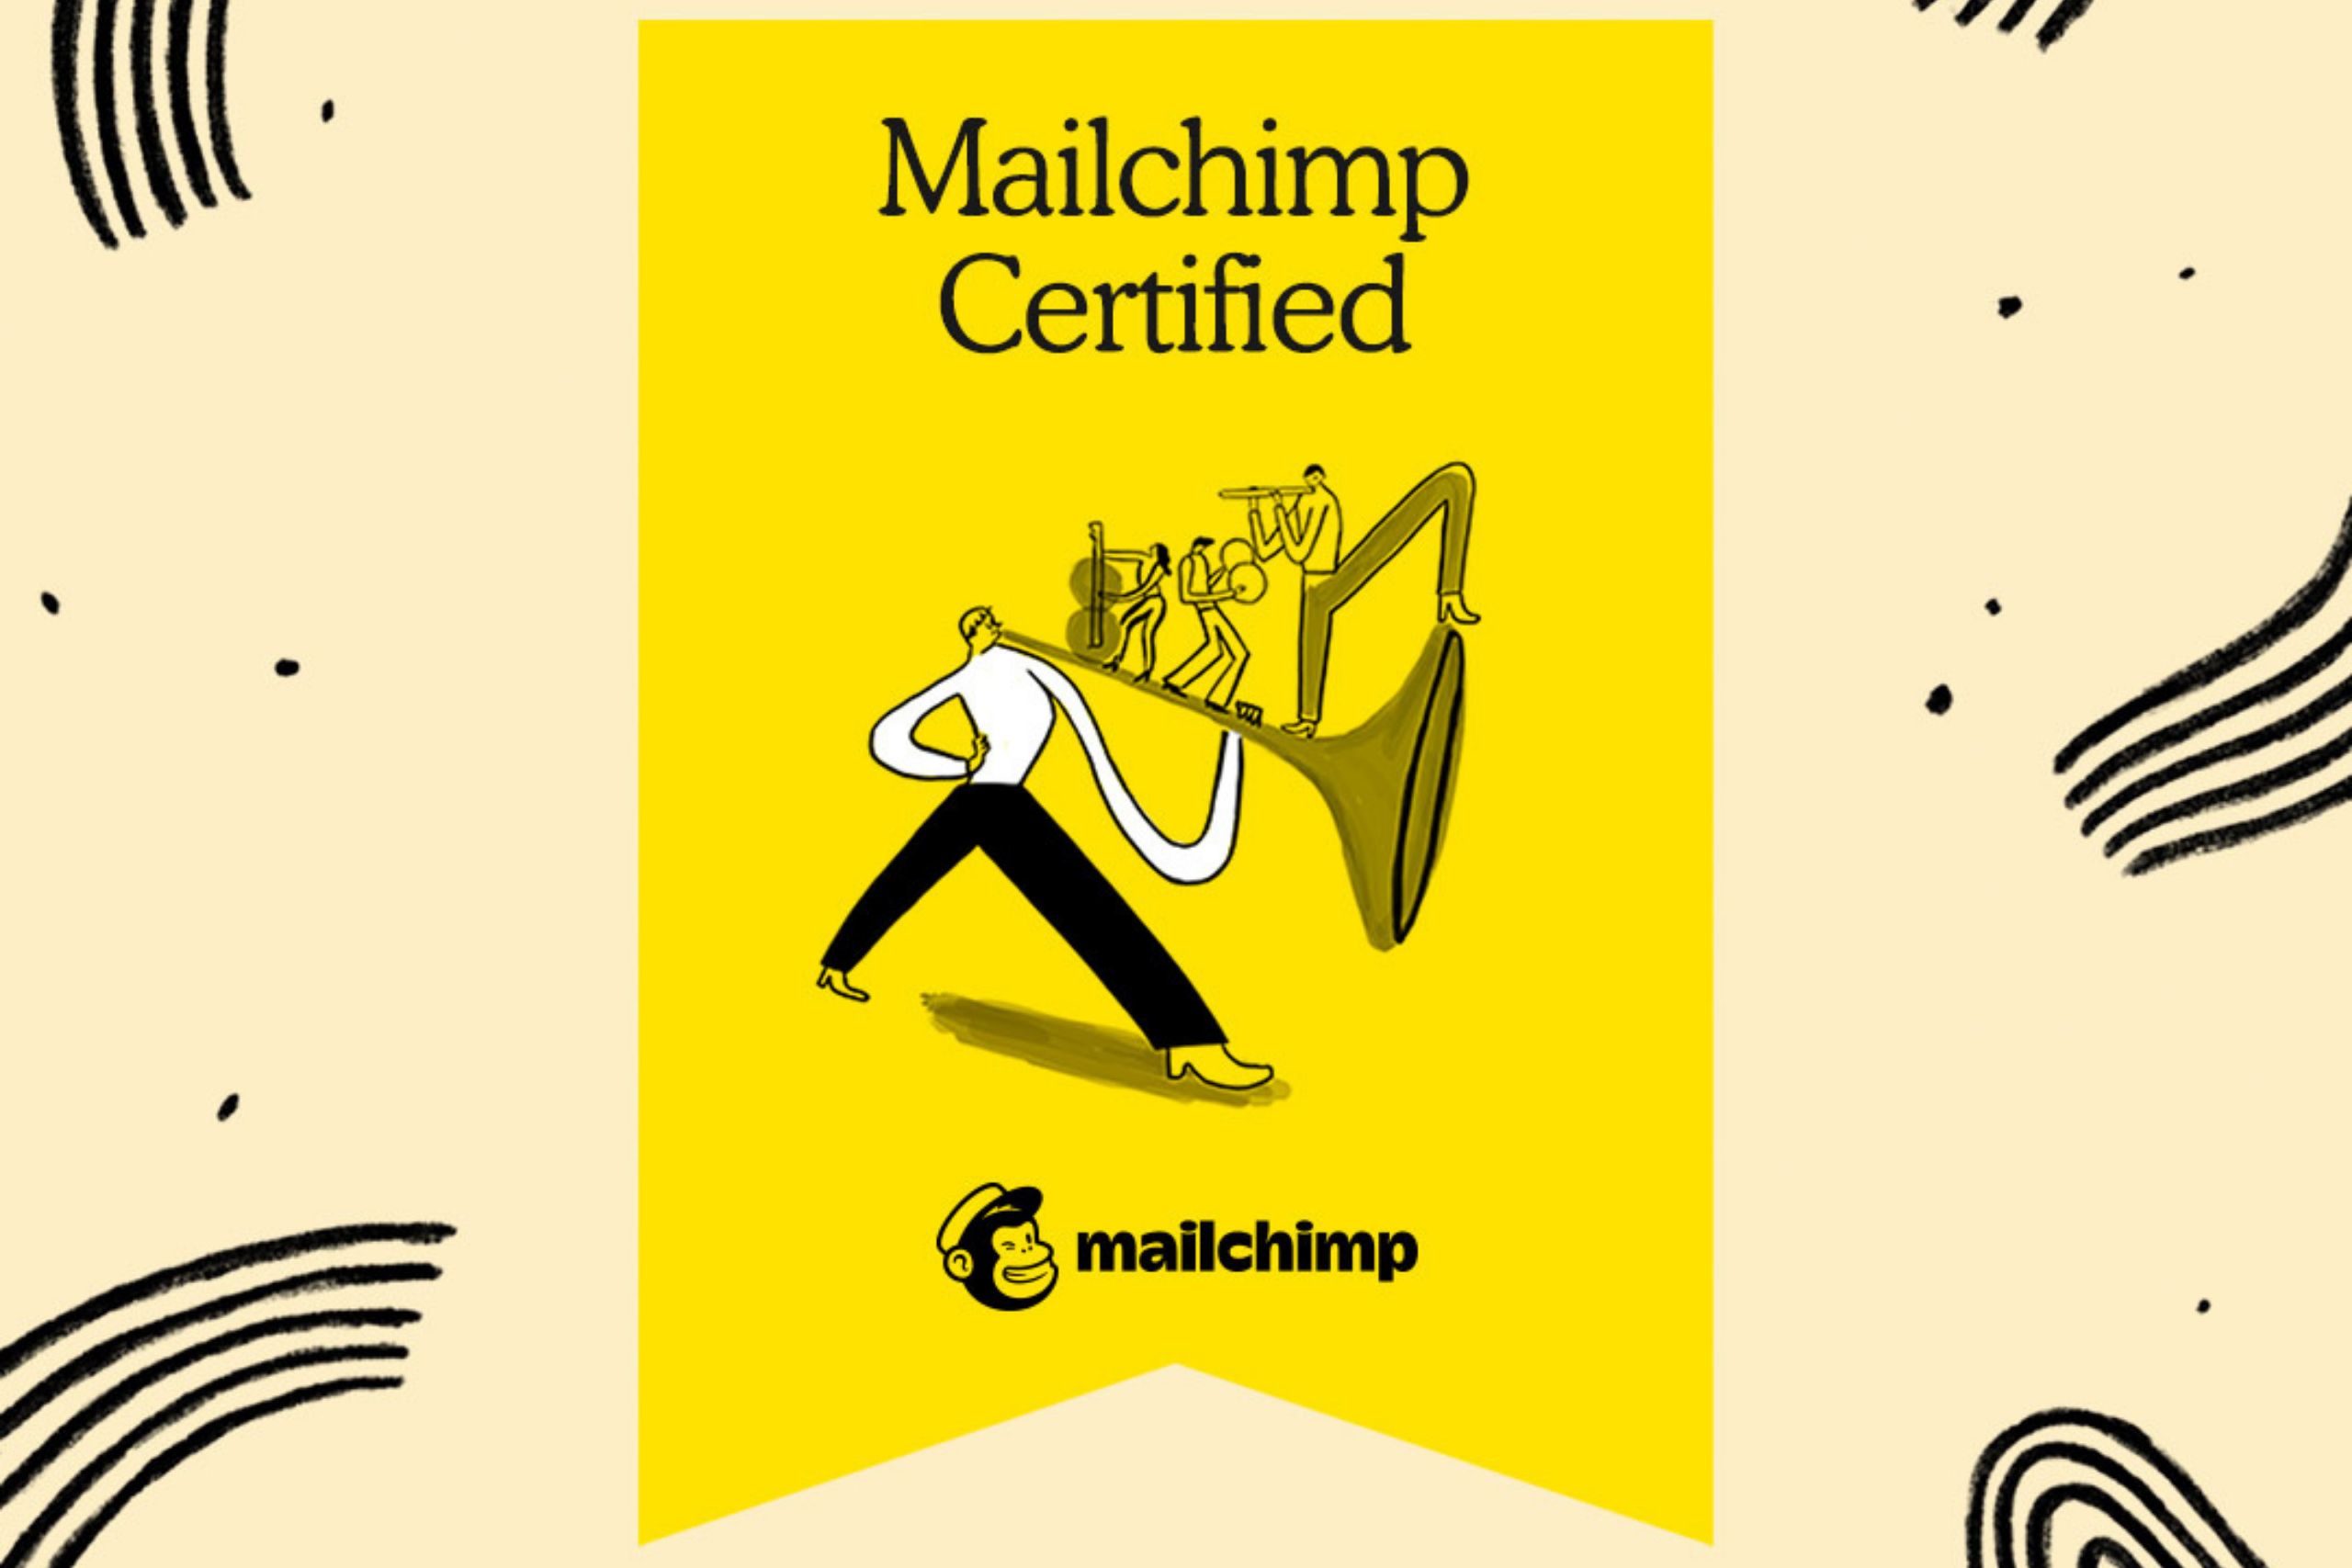 Mailchimp Certified graphic